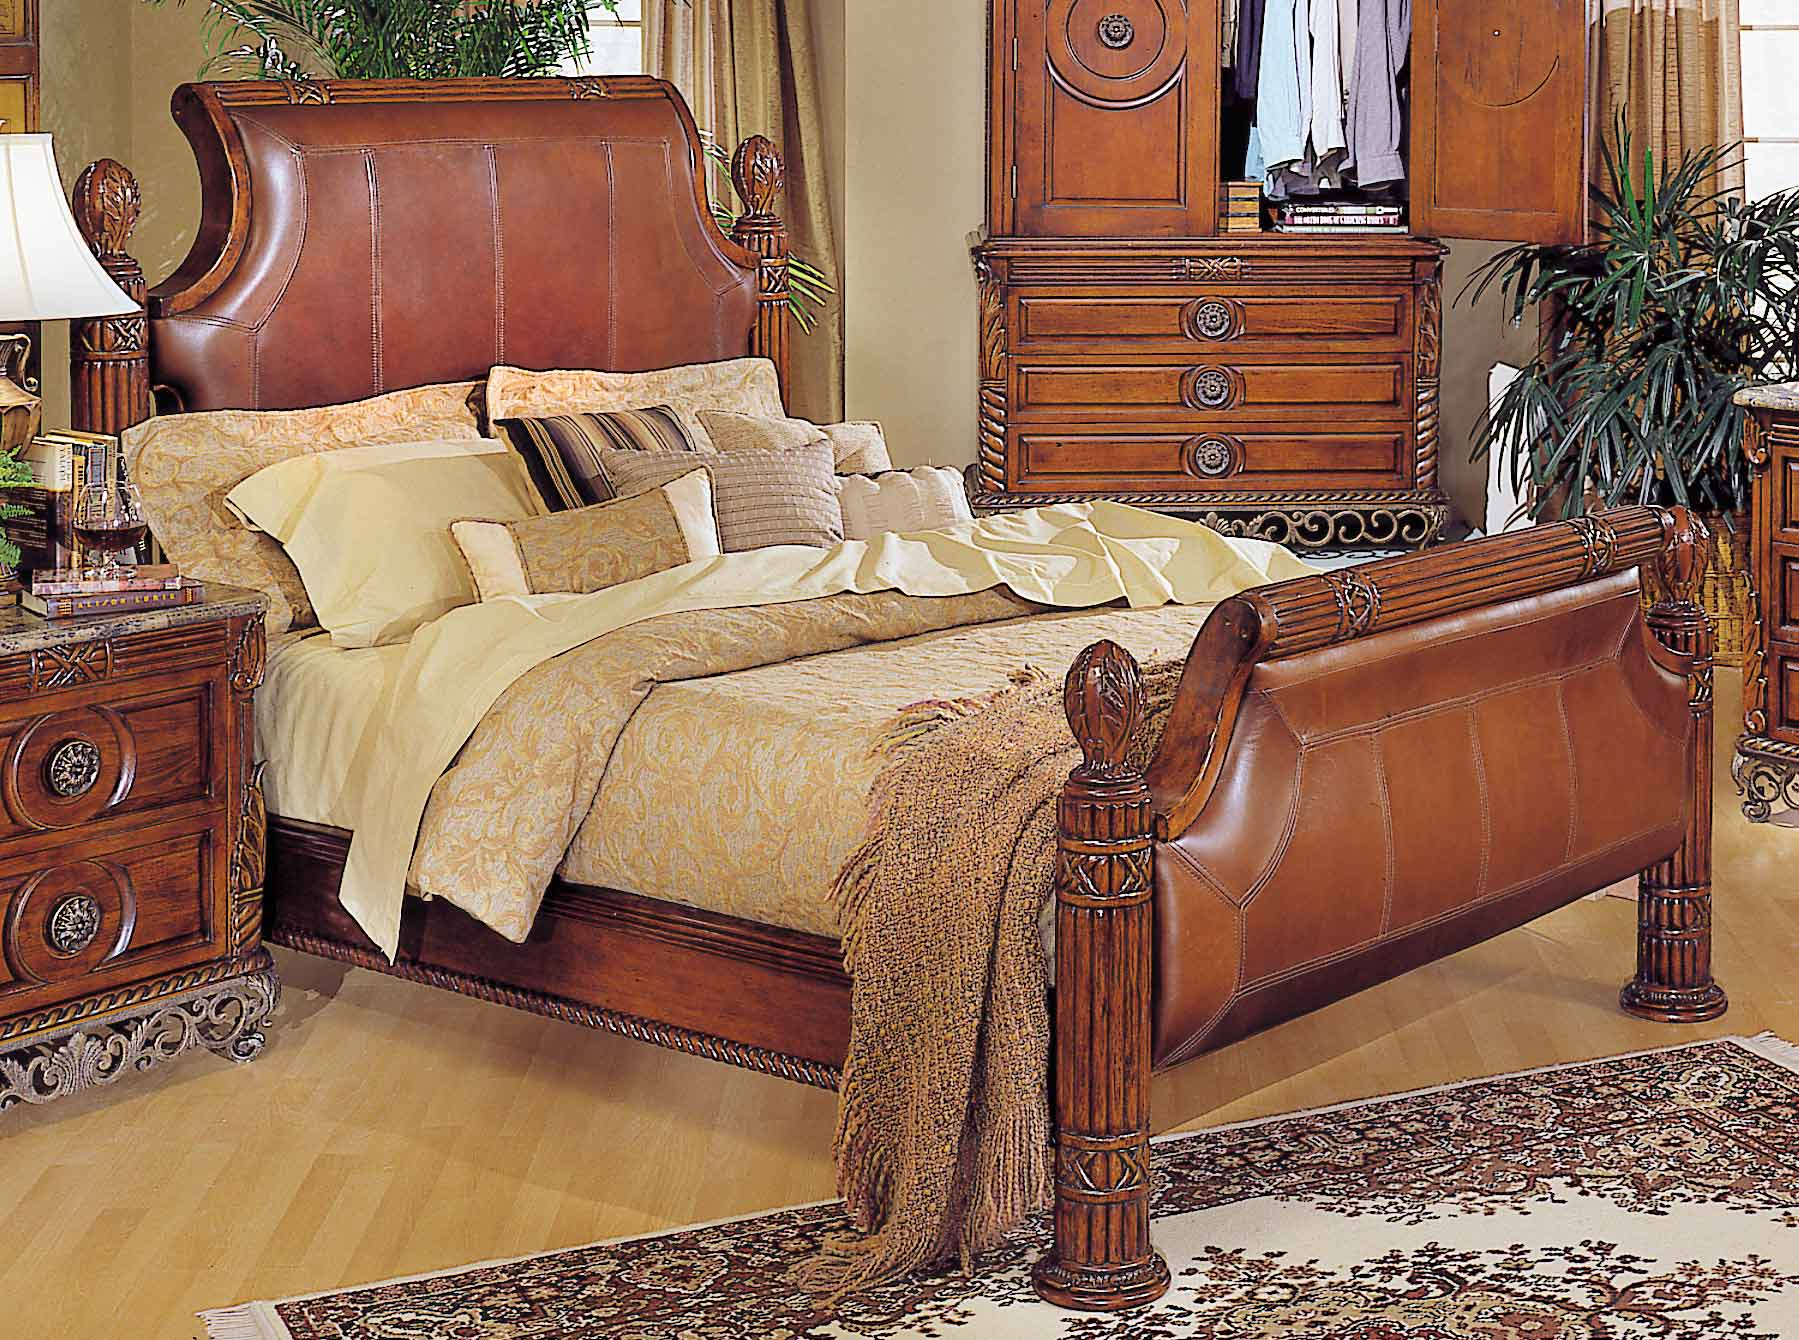 Homelegance Madrid Leather Bed with Rails